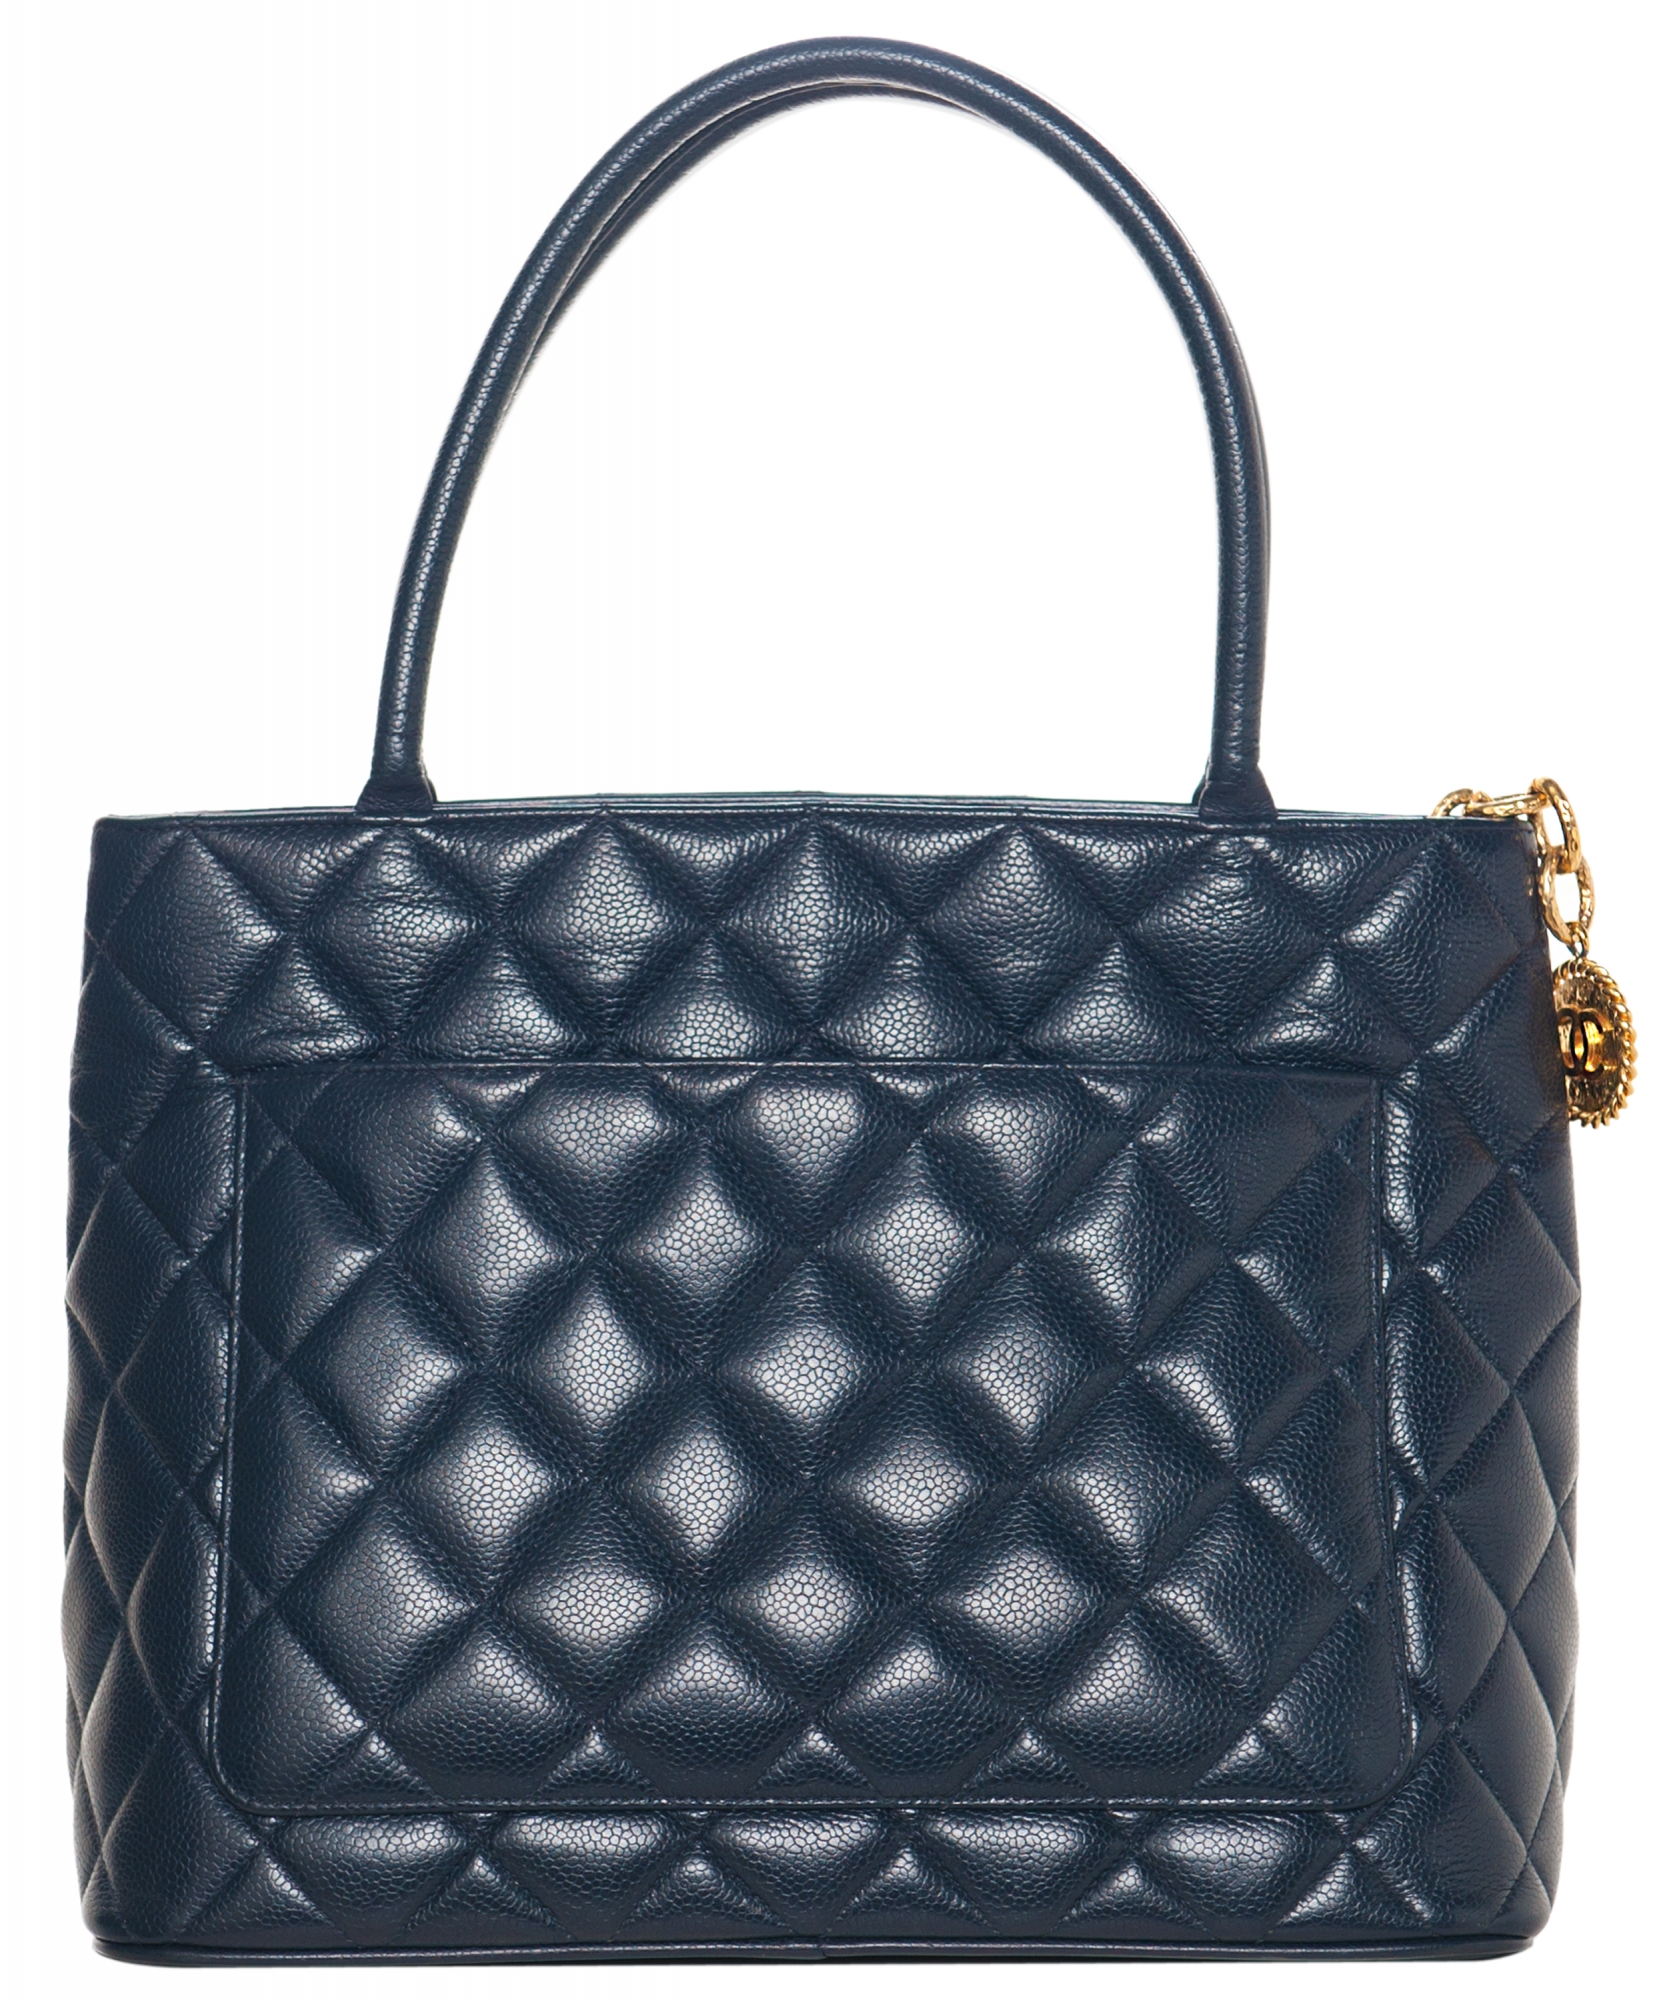 c959c638c9bd Vintage Chanel Navy Blue Caviar Quilted Medallion Tote | La Doyenne